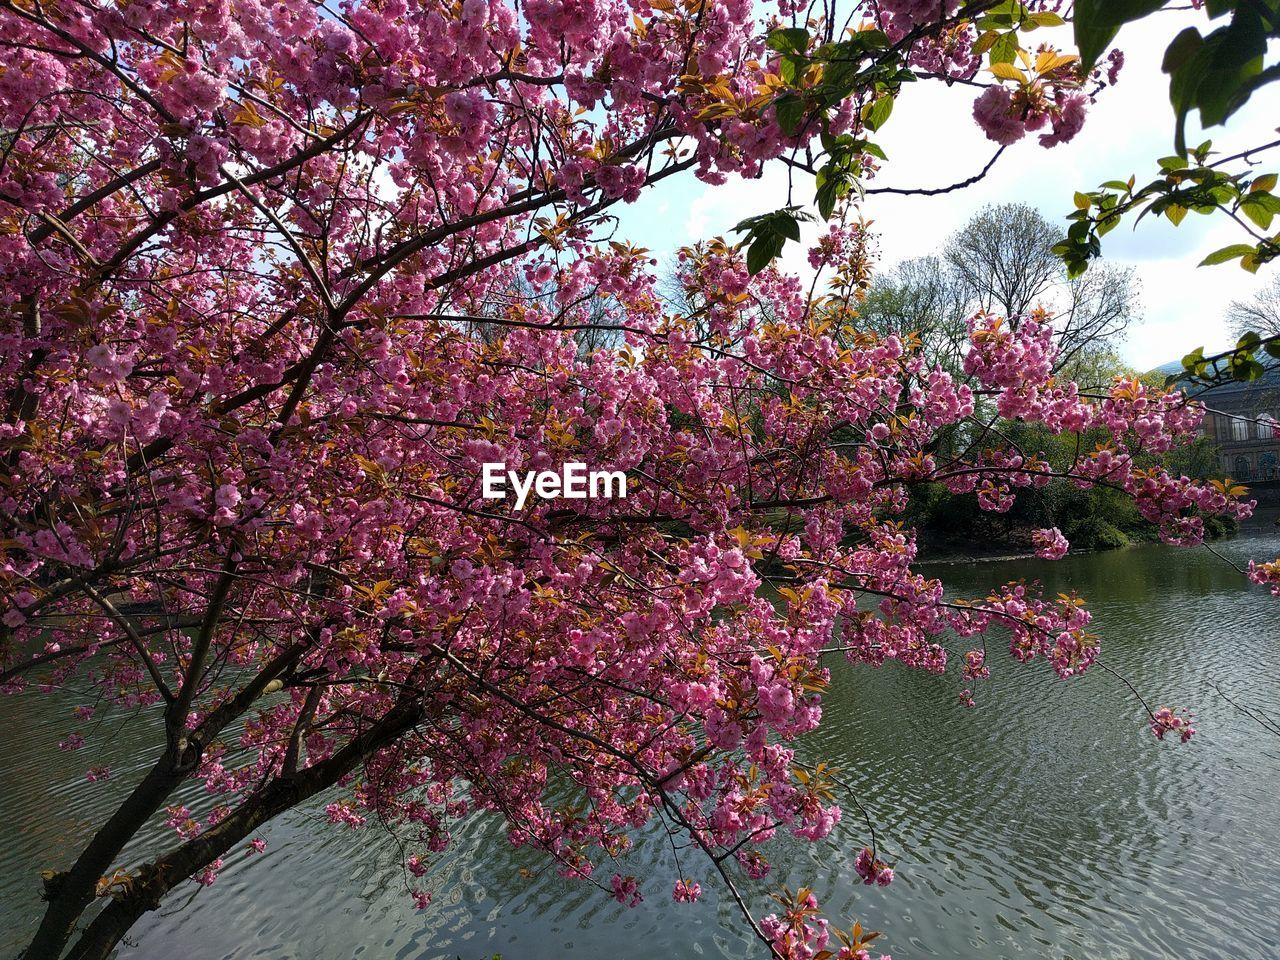 flower, tree, blossom, growth, cherry blossom, beauty in nature, cherry tree, branch, springtime, nature, pink color, fragility, freshness, botany, spring, pink, rhododendron, no people, apple blossom, orchard, lake, blooming, tranquility, outdoors, plum blossom, scenics, day, sky